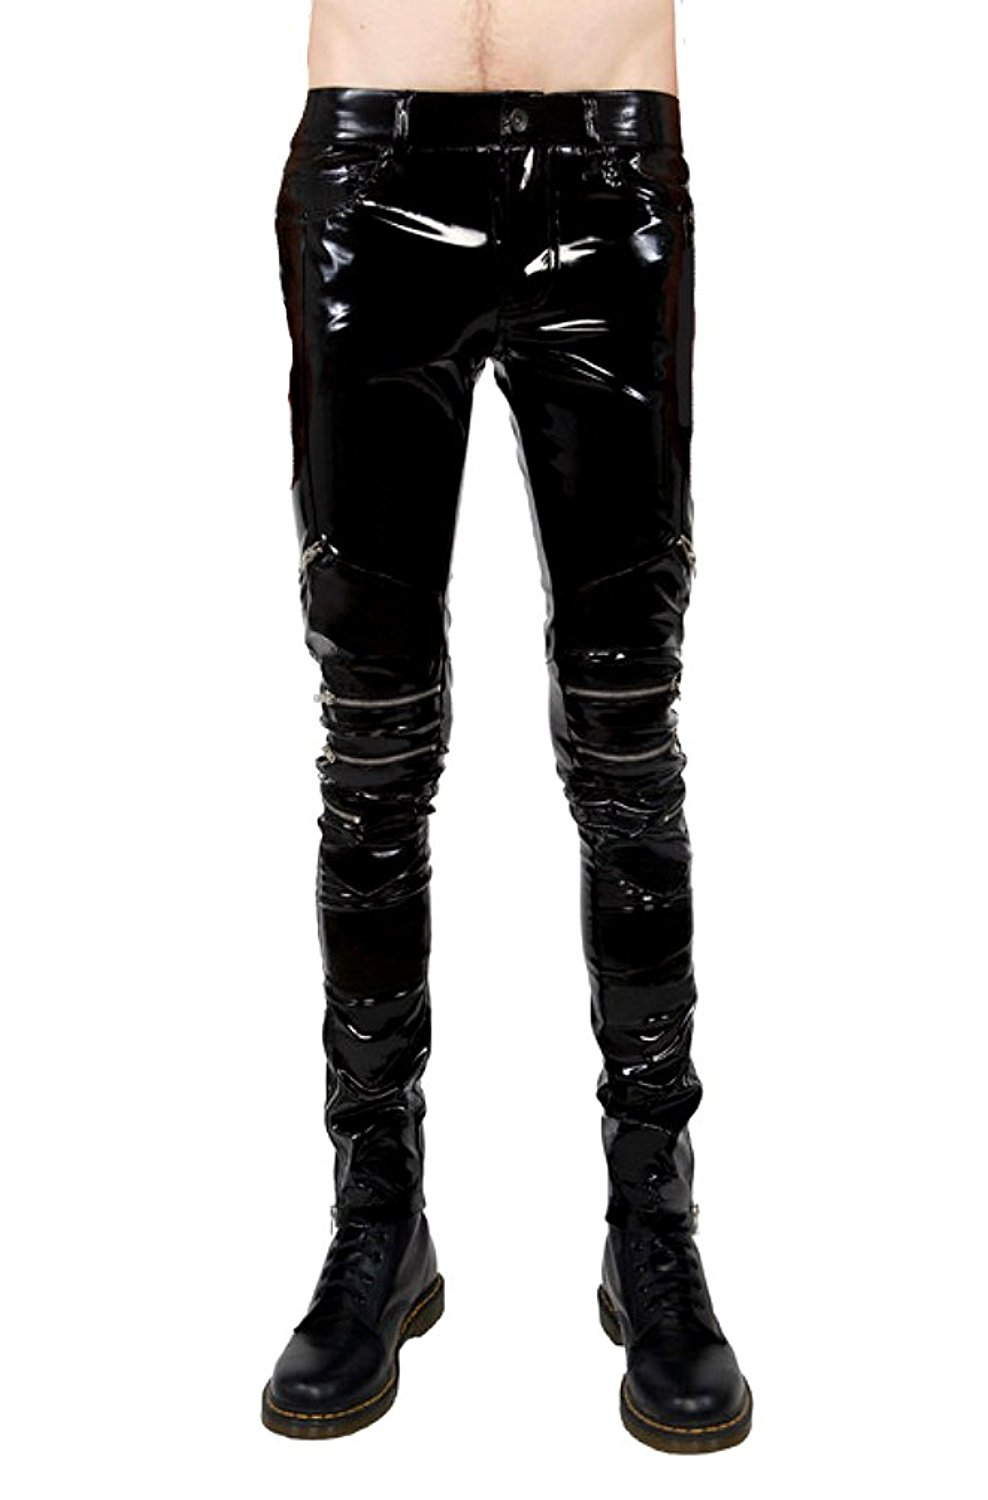 a346adab8d6af3 Get Quotations · Lip Service Gothic Punk Rocker Moto PVC Vinyl Black Shiny  Wet Look Zip Jeans Pants